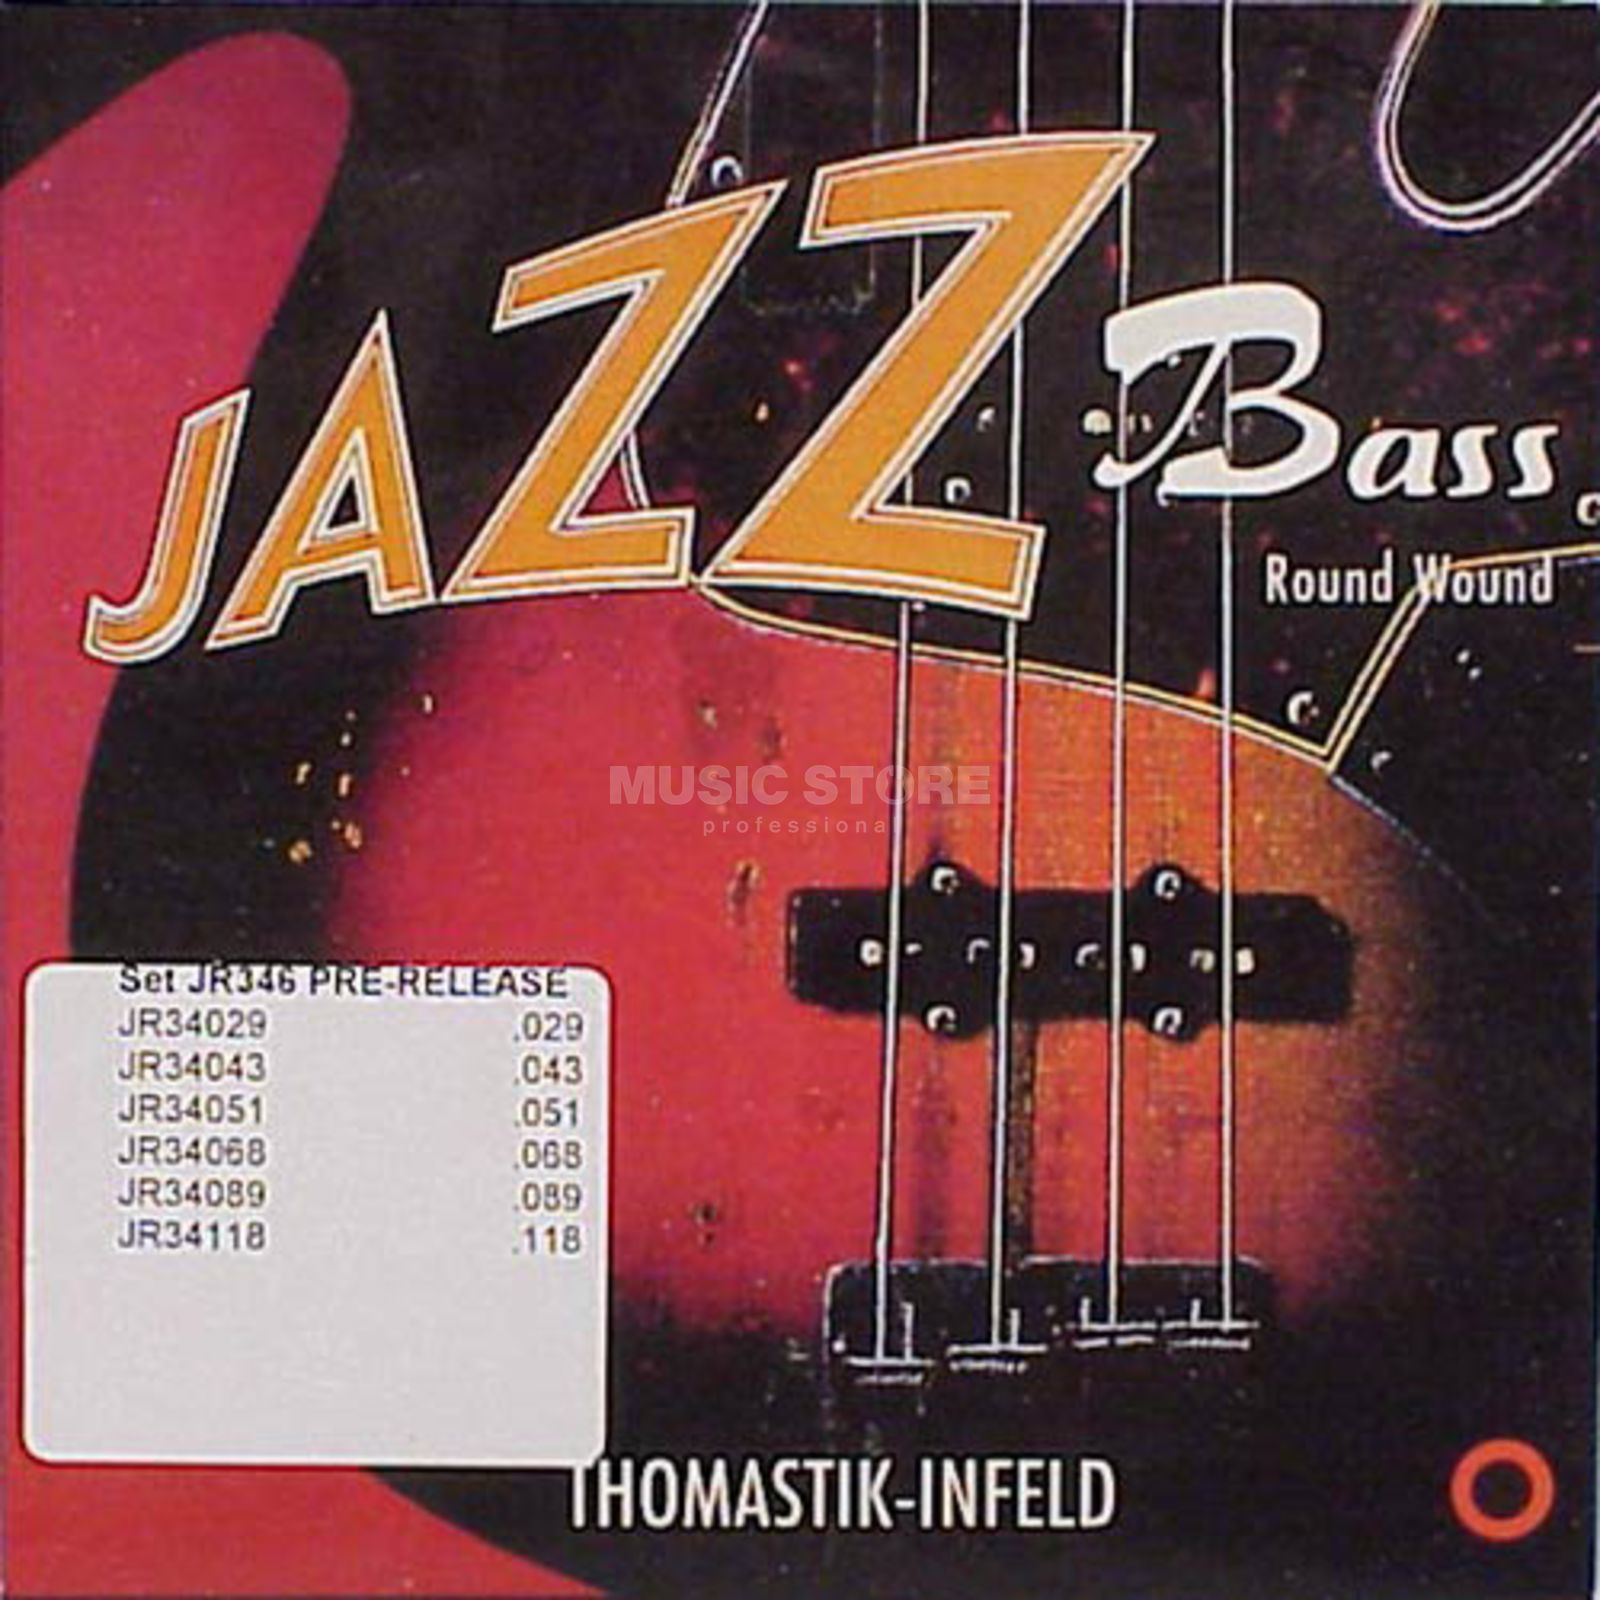 Thomastik 6 Bass Strings JR 346 29-118 Nickel Round Wound Imagem do produto